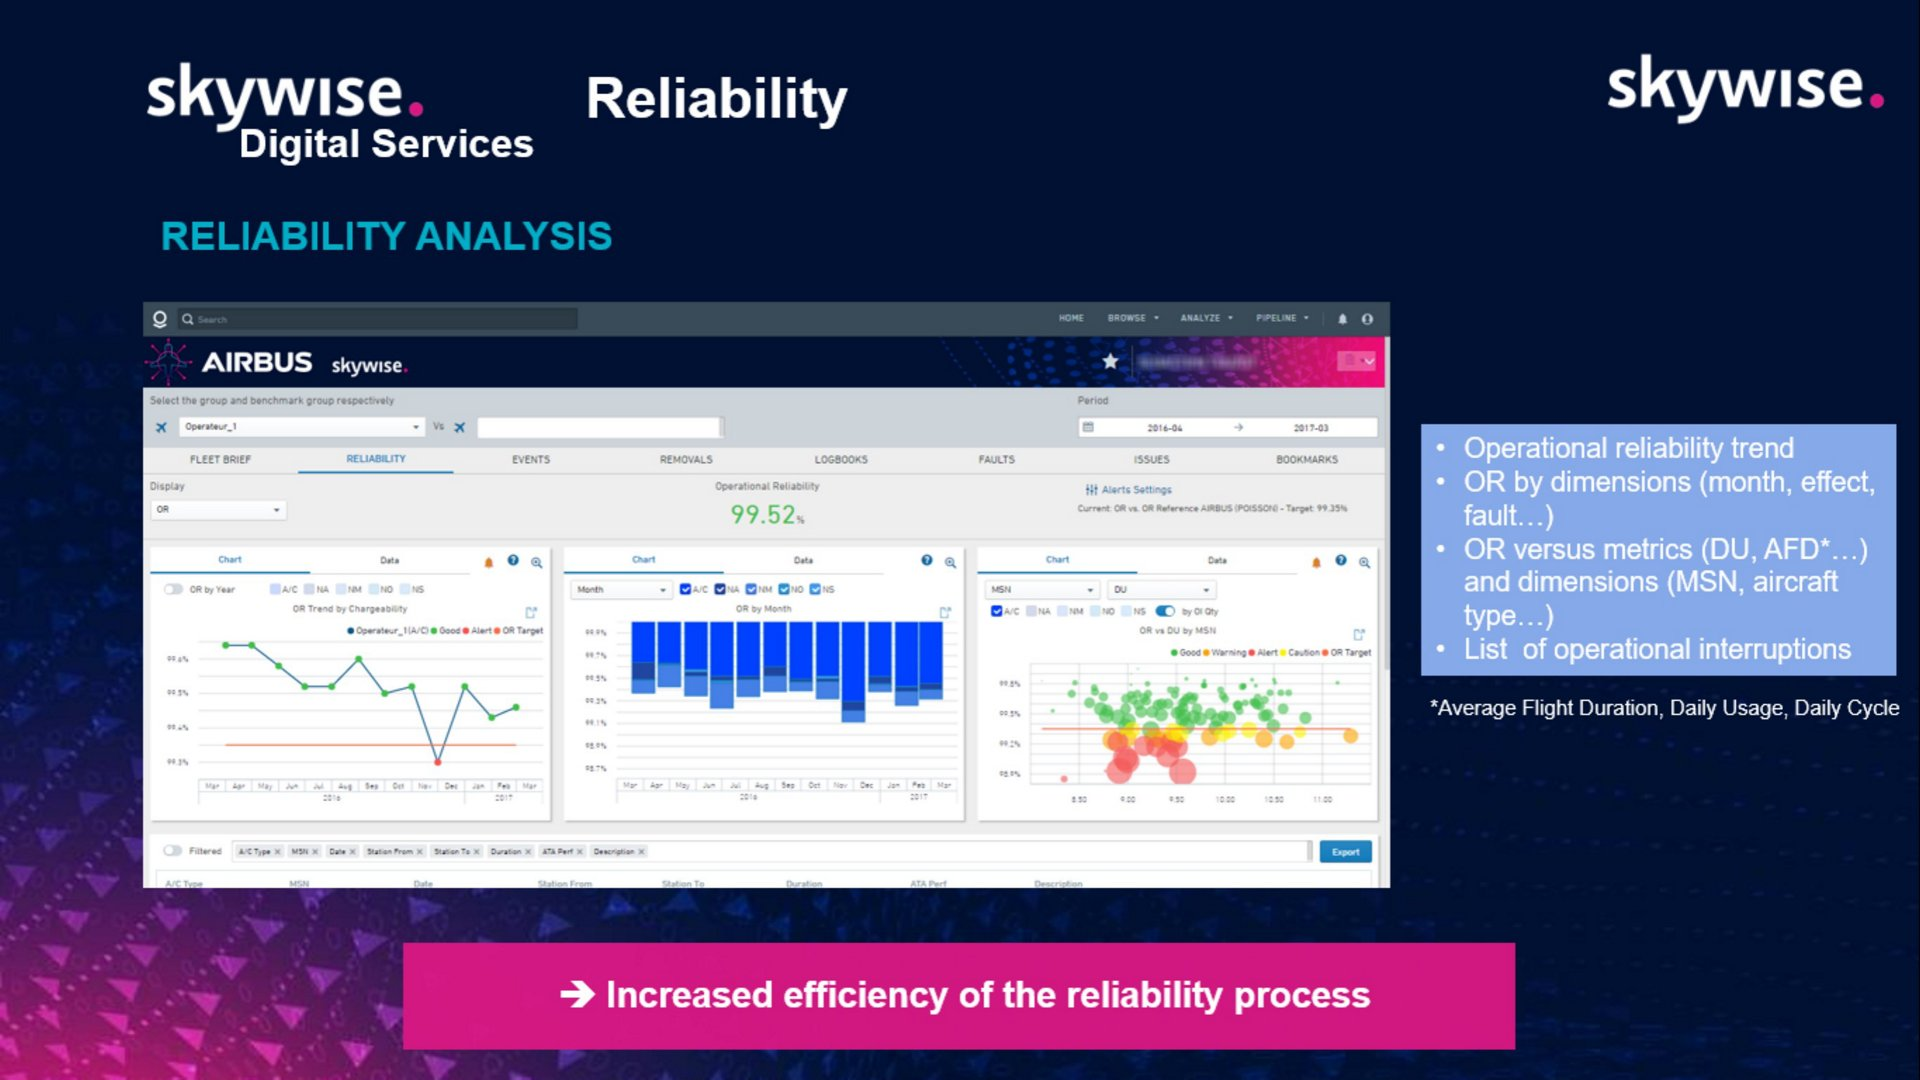 Developed by Airbus, Skywise Reliability integrates all relevant fleet-wide data and fully automates reliability reporting, saving airlines hours per week